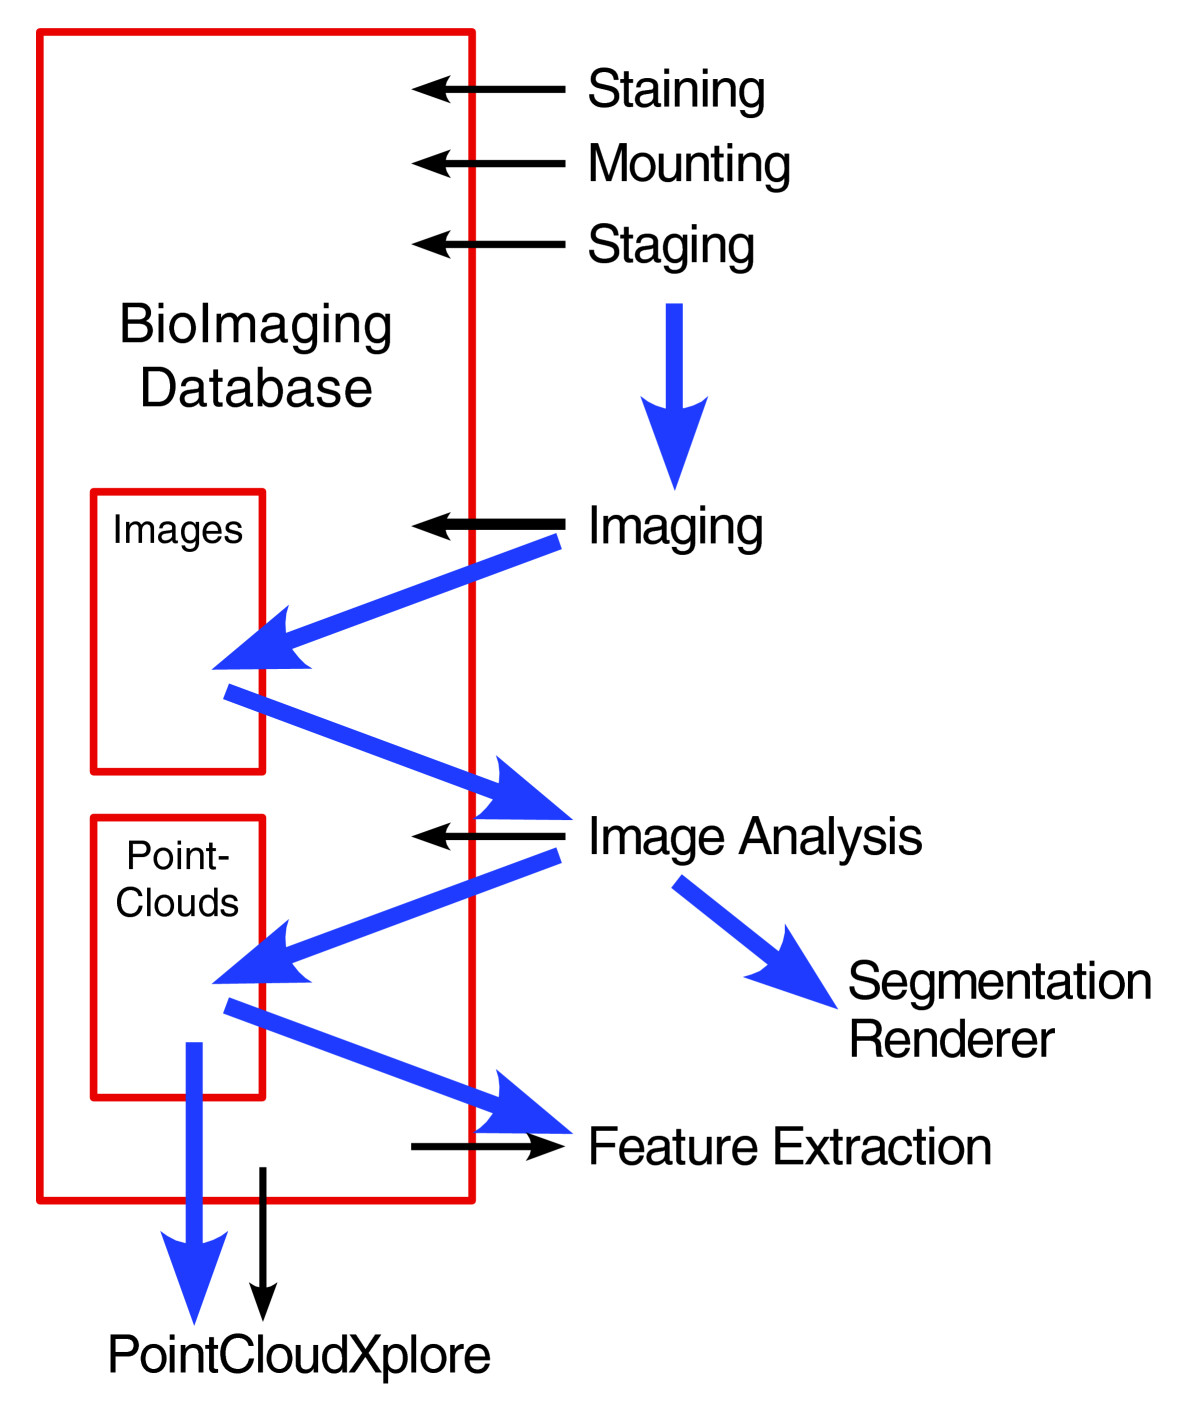 https://static-content.springer.com/image/art%3A10.1186%2Fgb-2006-7-12-r123/MediaObjects/13059_2006_Article_1391_Fig1_HTML.jpg